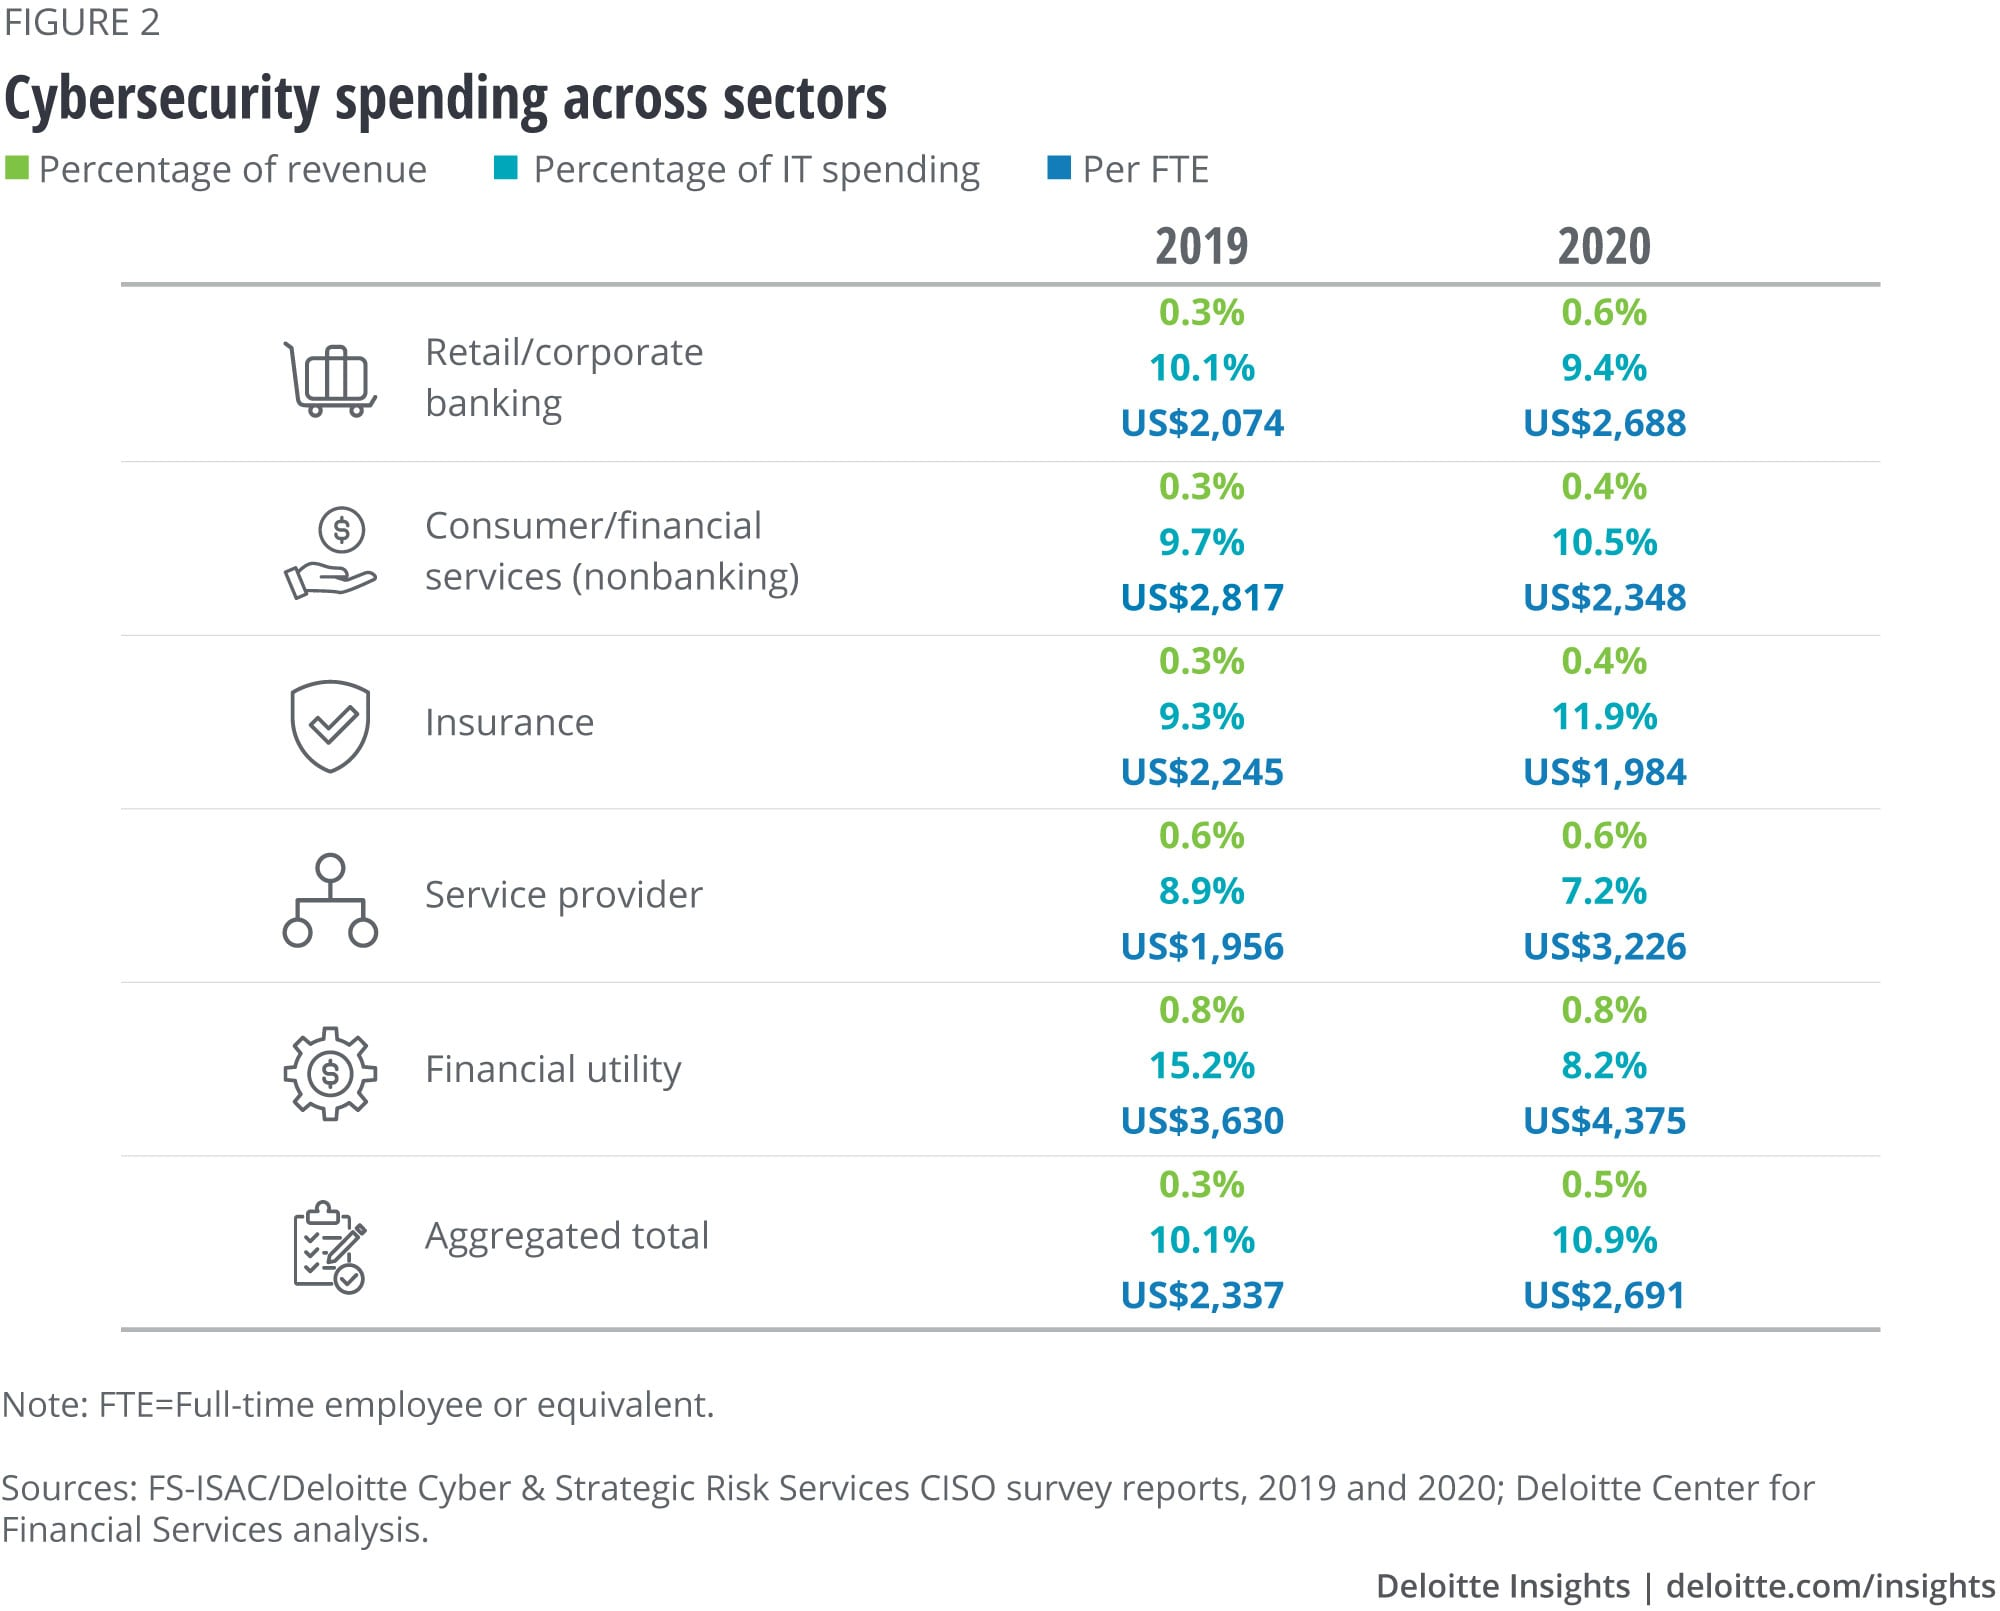 Cybersecurity Financial Institutions spending across sectors